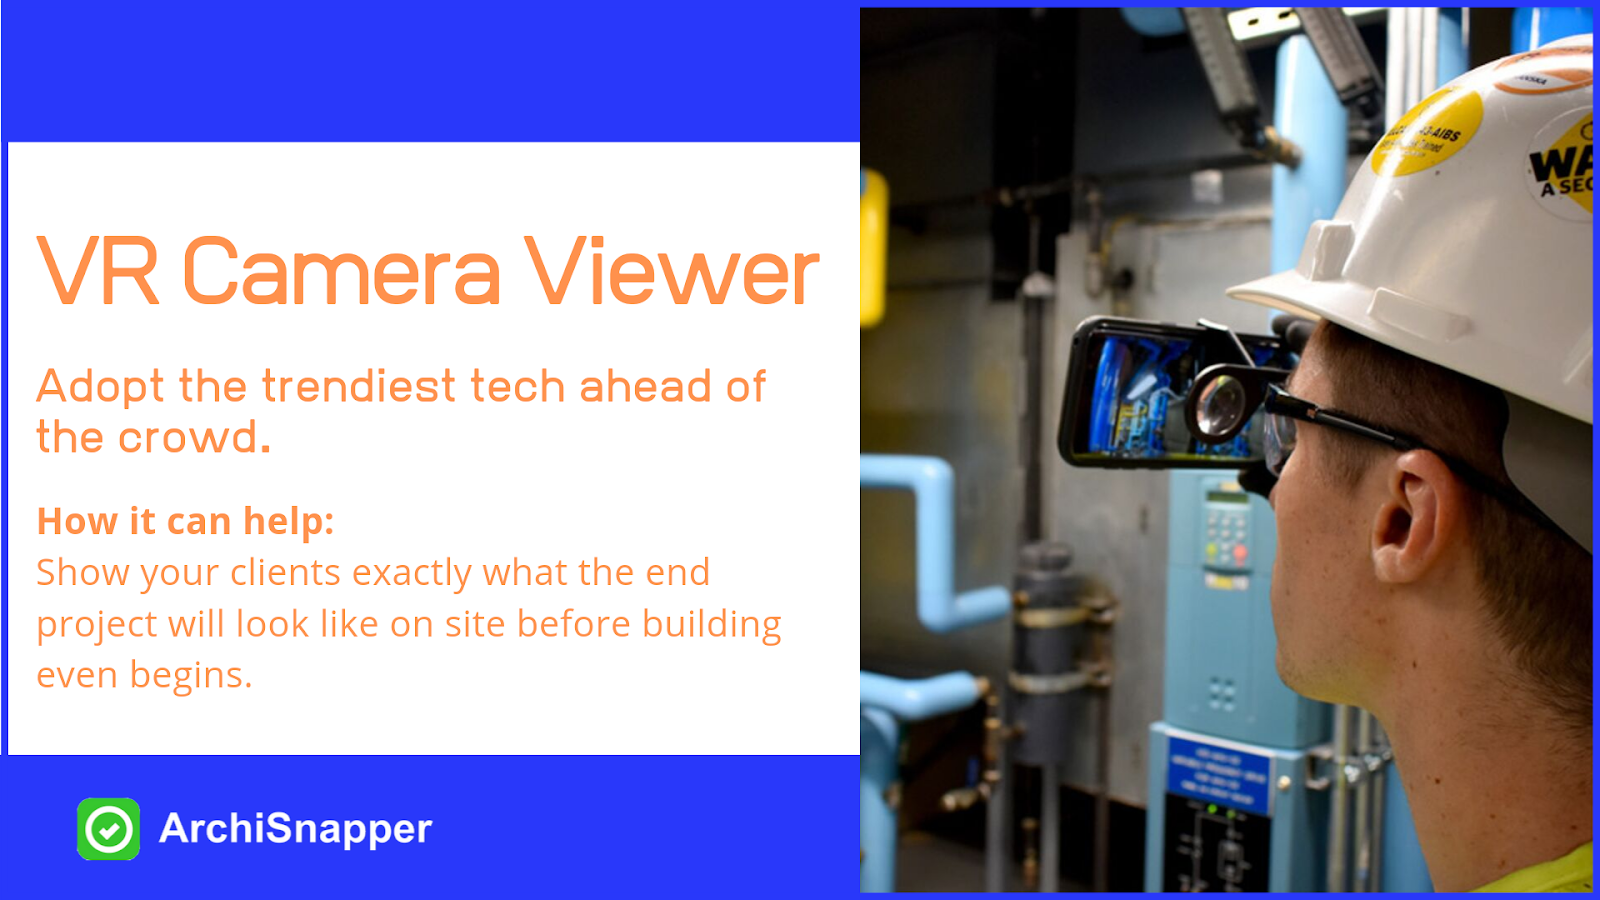 VR Camera Viewer | List of the 15 must-have tech tools and accessories ideal for architects presented by Archisnapper